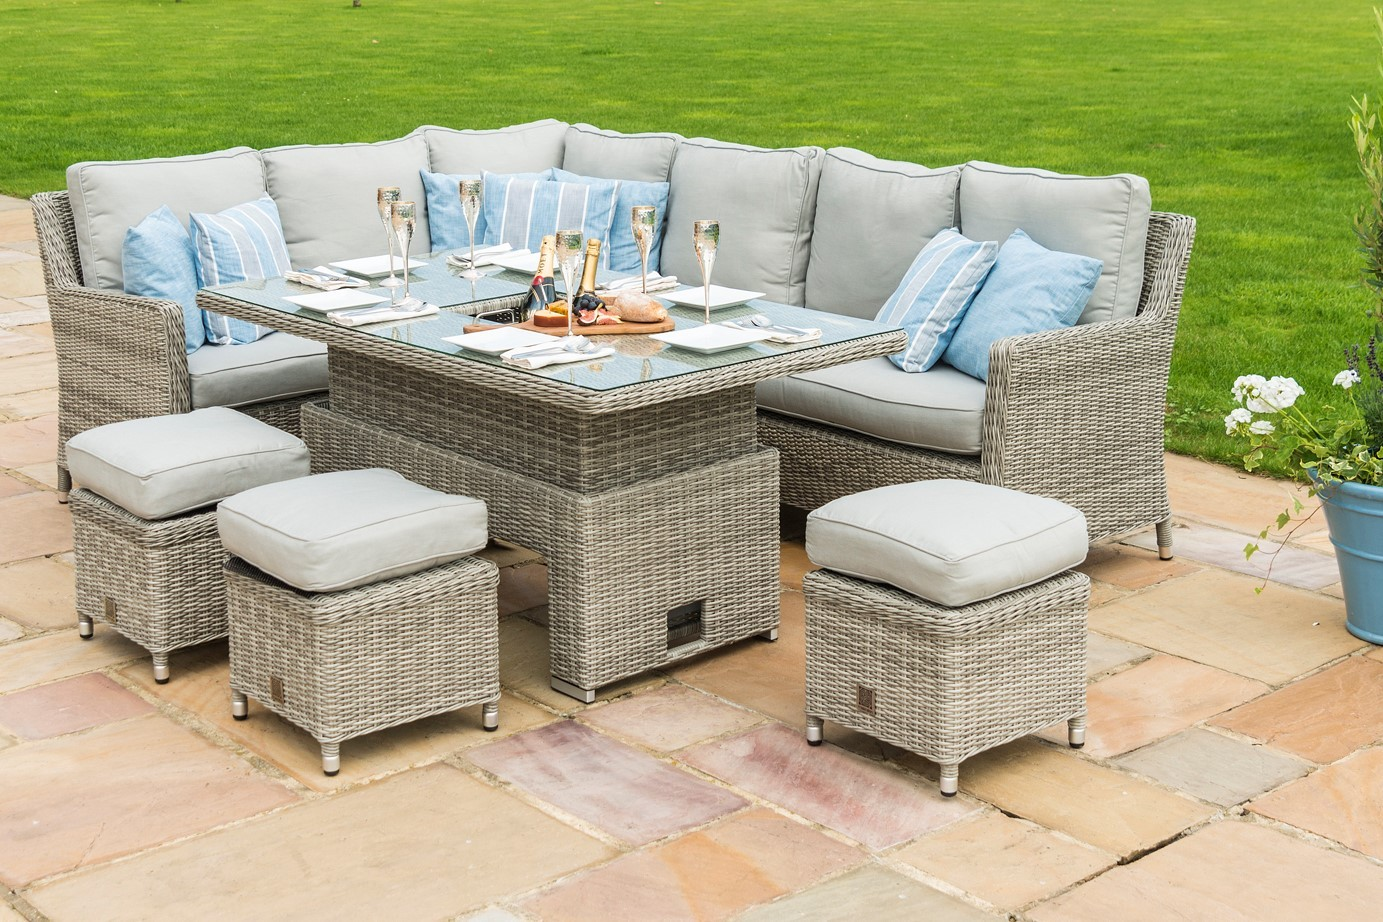 Maze Rattan Oxford Corner Sofa Dining Set With ice bucket and rising table